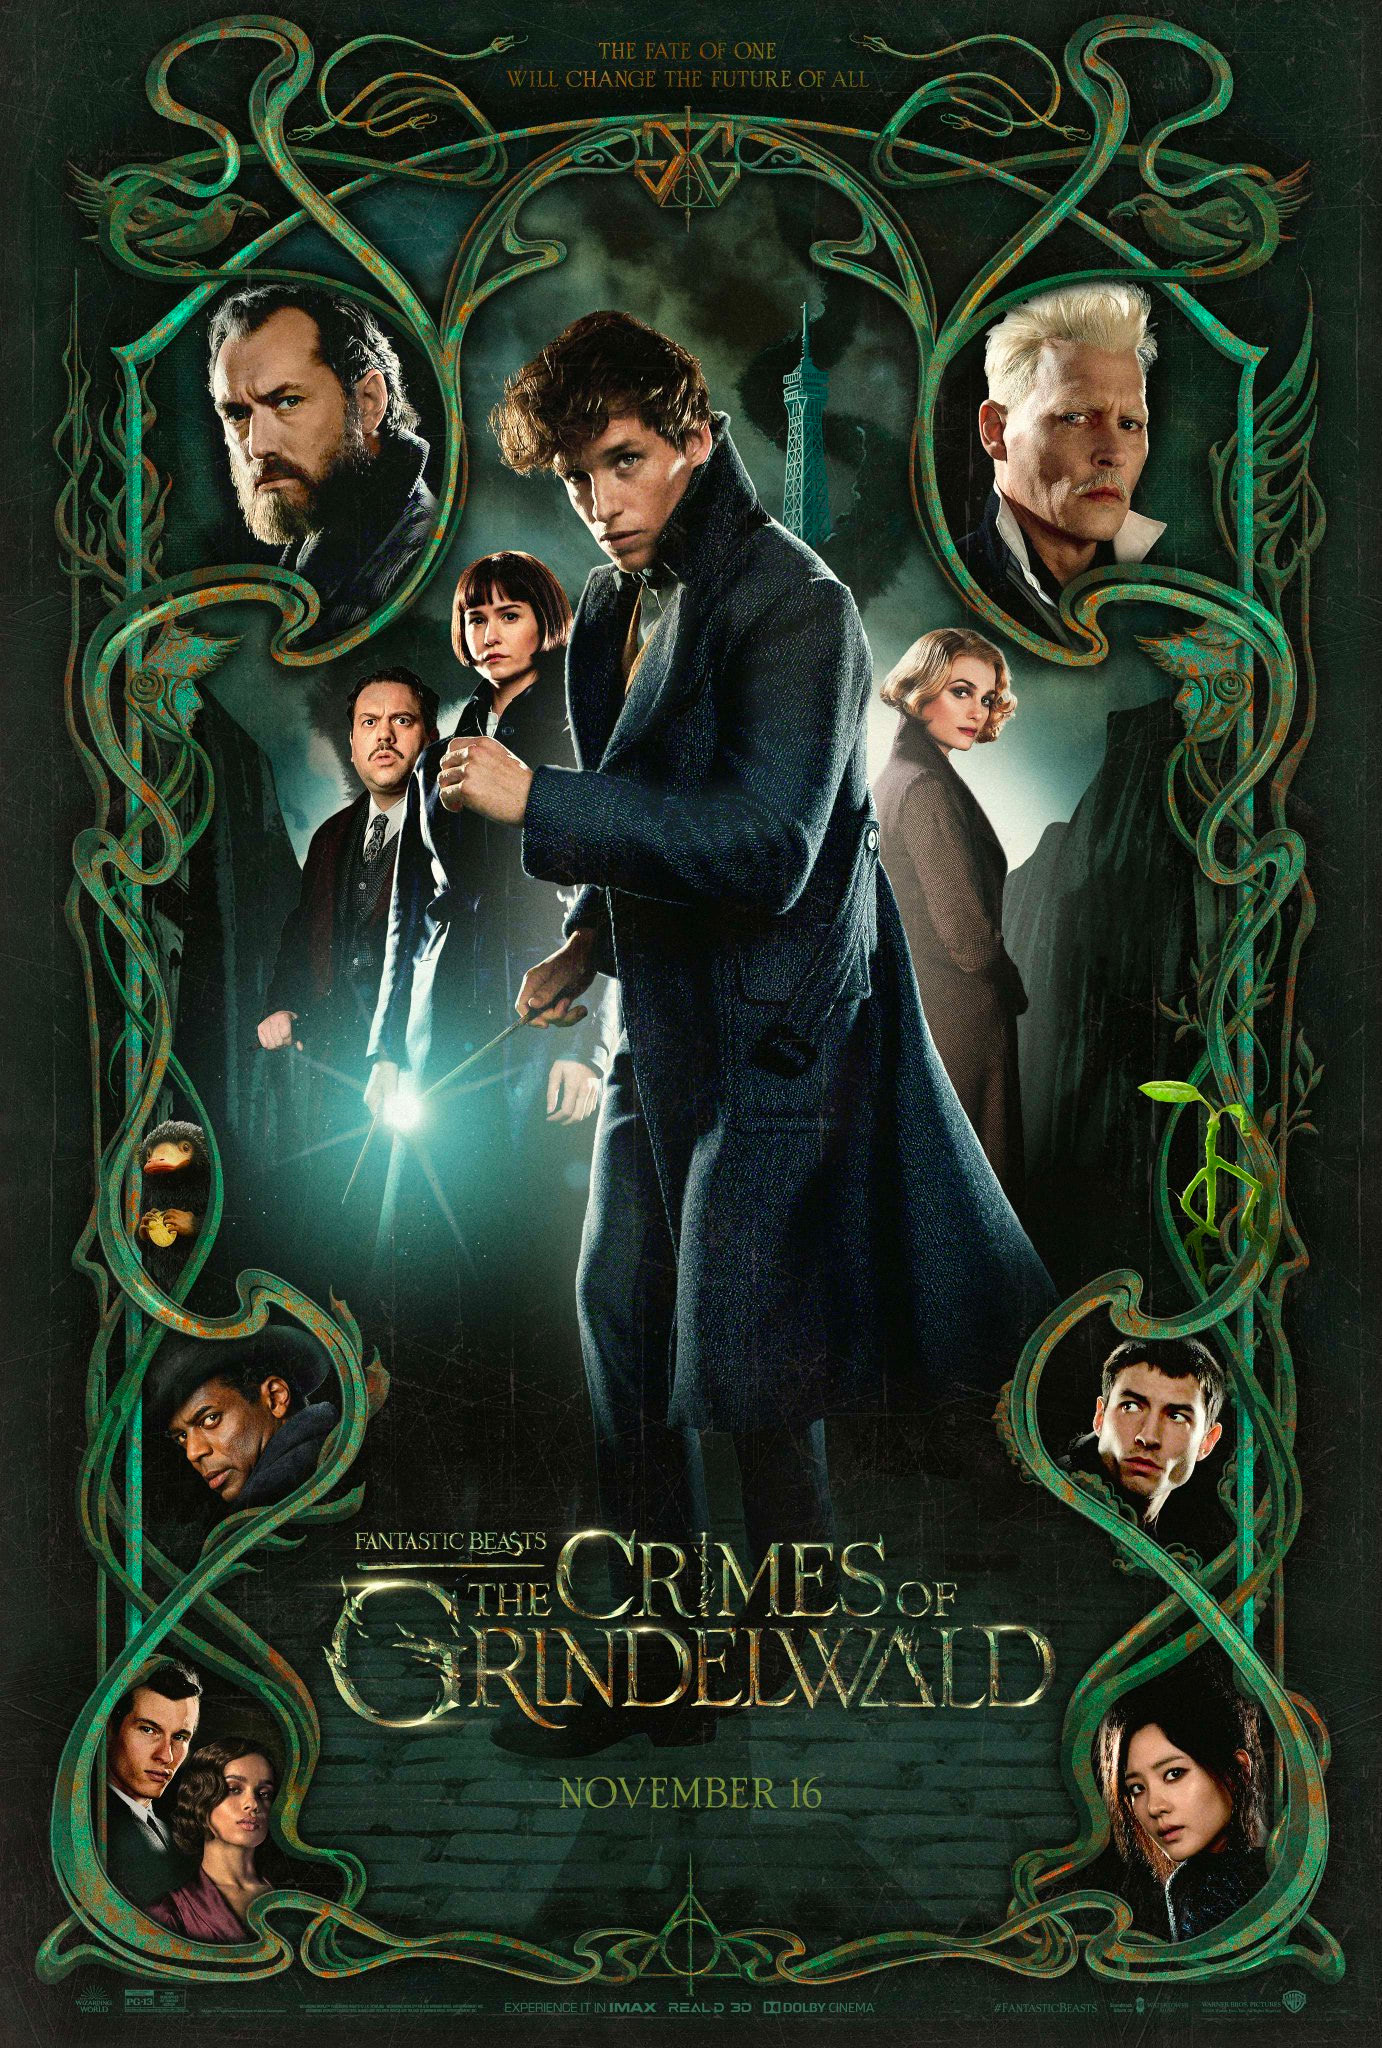 'Crimes of Grindelwald' poster #2